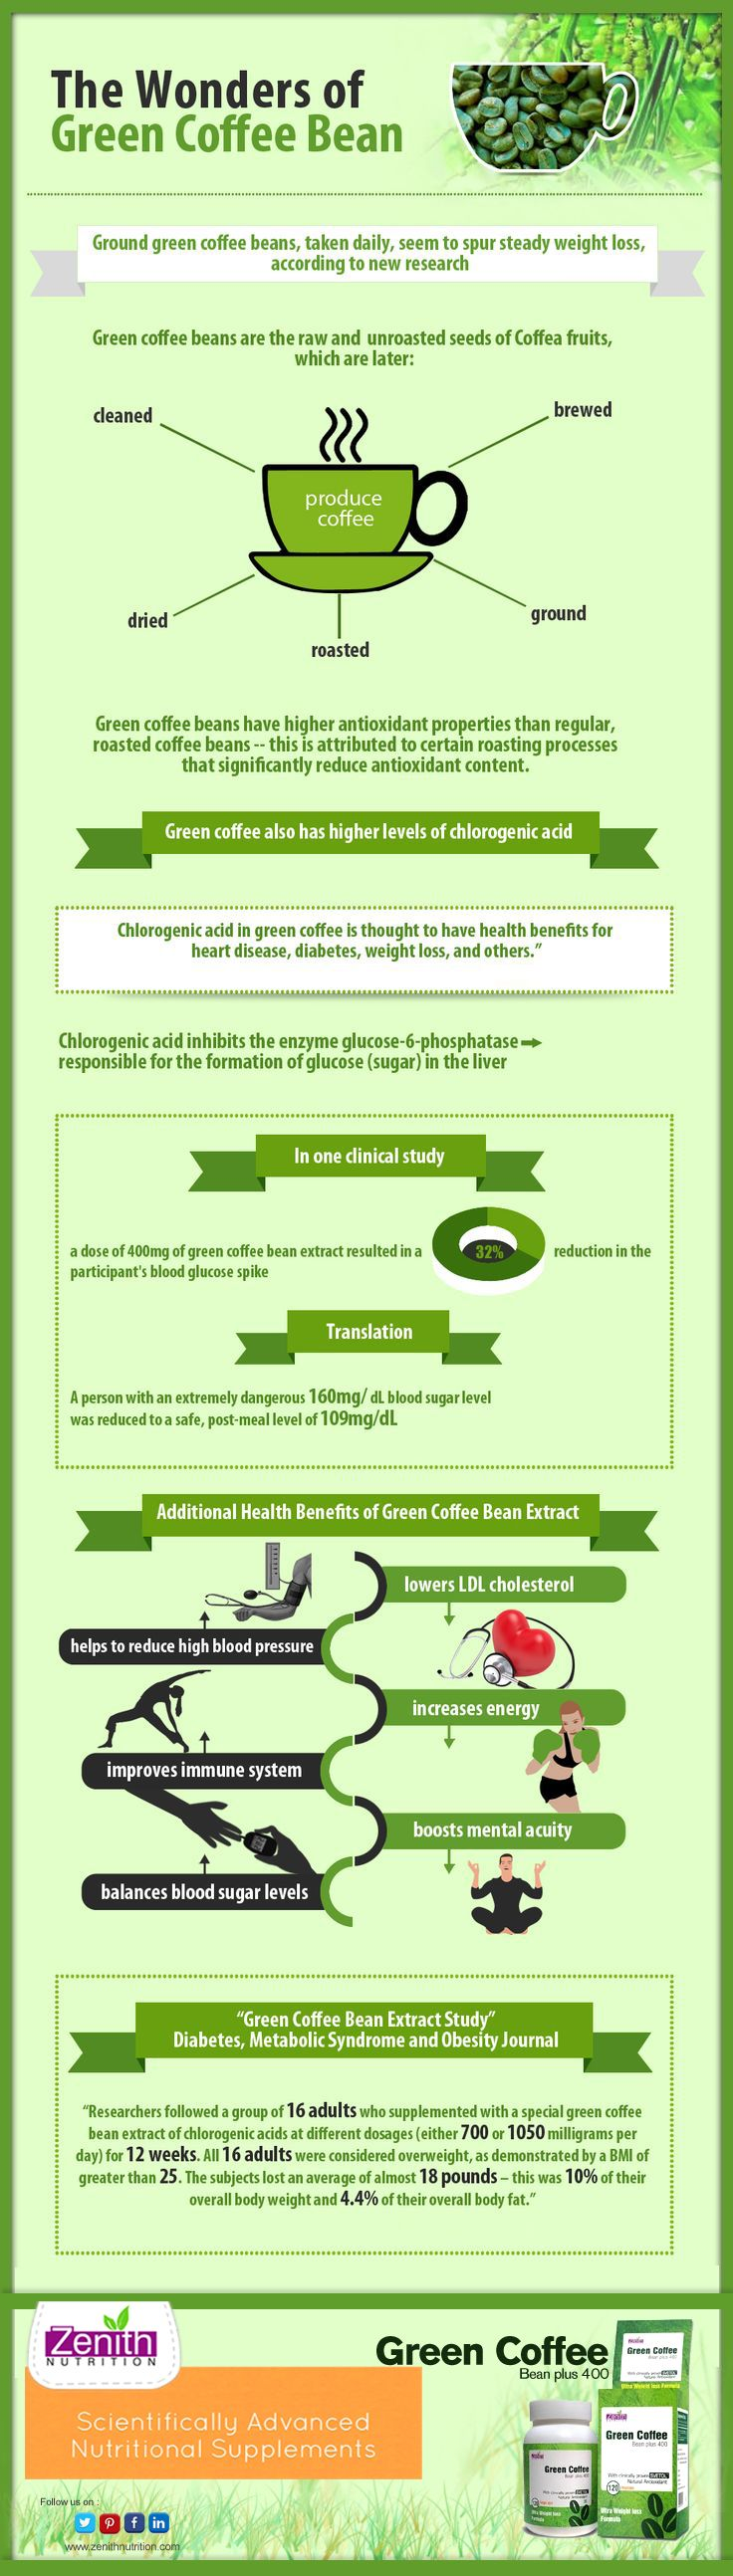 The Wonders of Green Coffe Bean. Additional health benefits of Green Coffee Bean Extract - reduce high bloodpressure, improves Immune system, balance blood sugar level, lowers LDL cholesterol, increase energy, boosts mental activity. Green Coffee Bean Extract 400 best supplement from Zenith Nutrition. Health Supplements. Nutritional Supplements. Health Infographics.